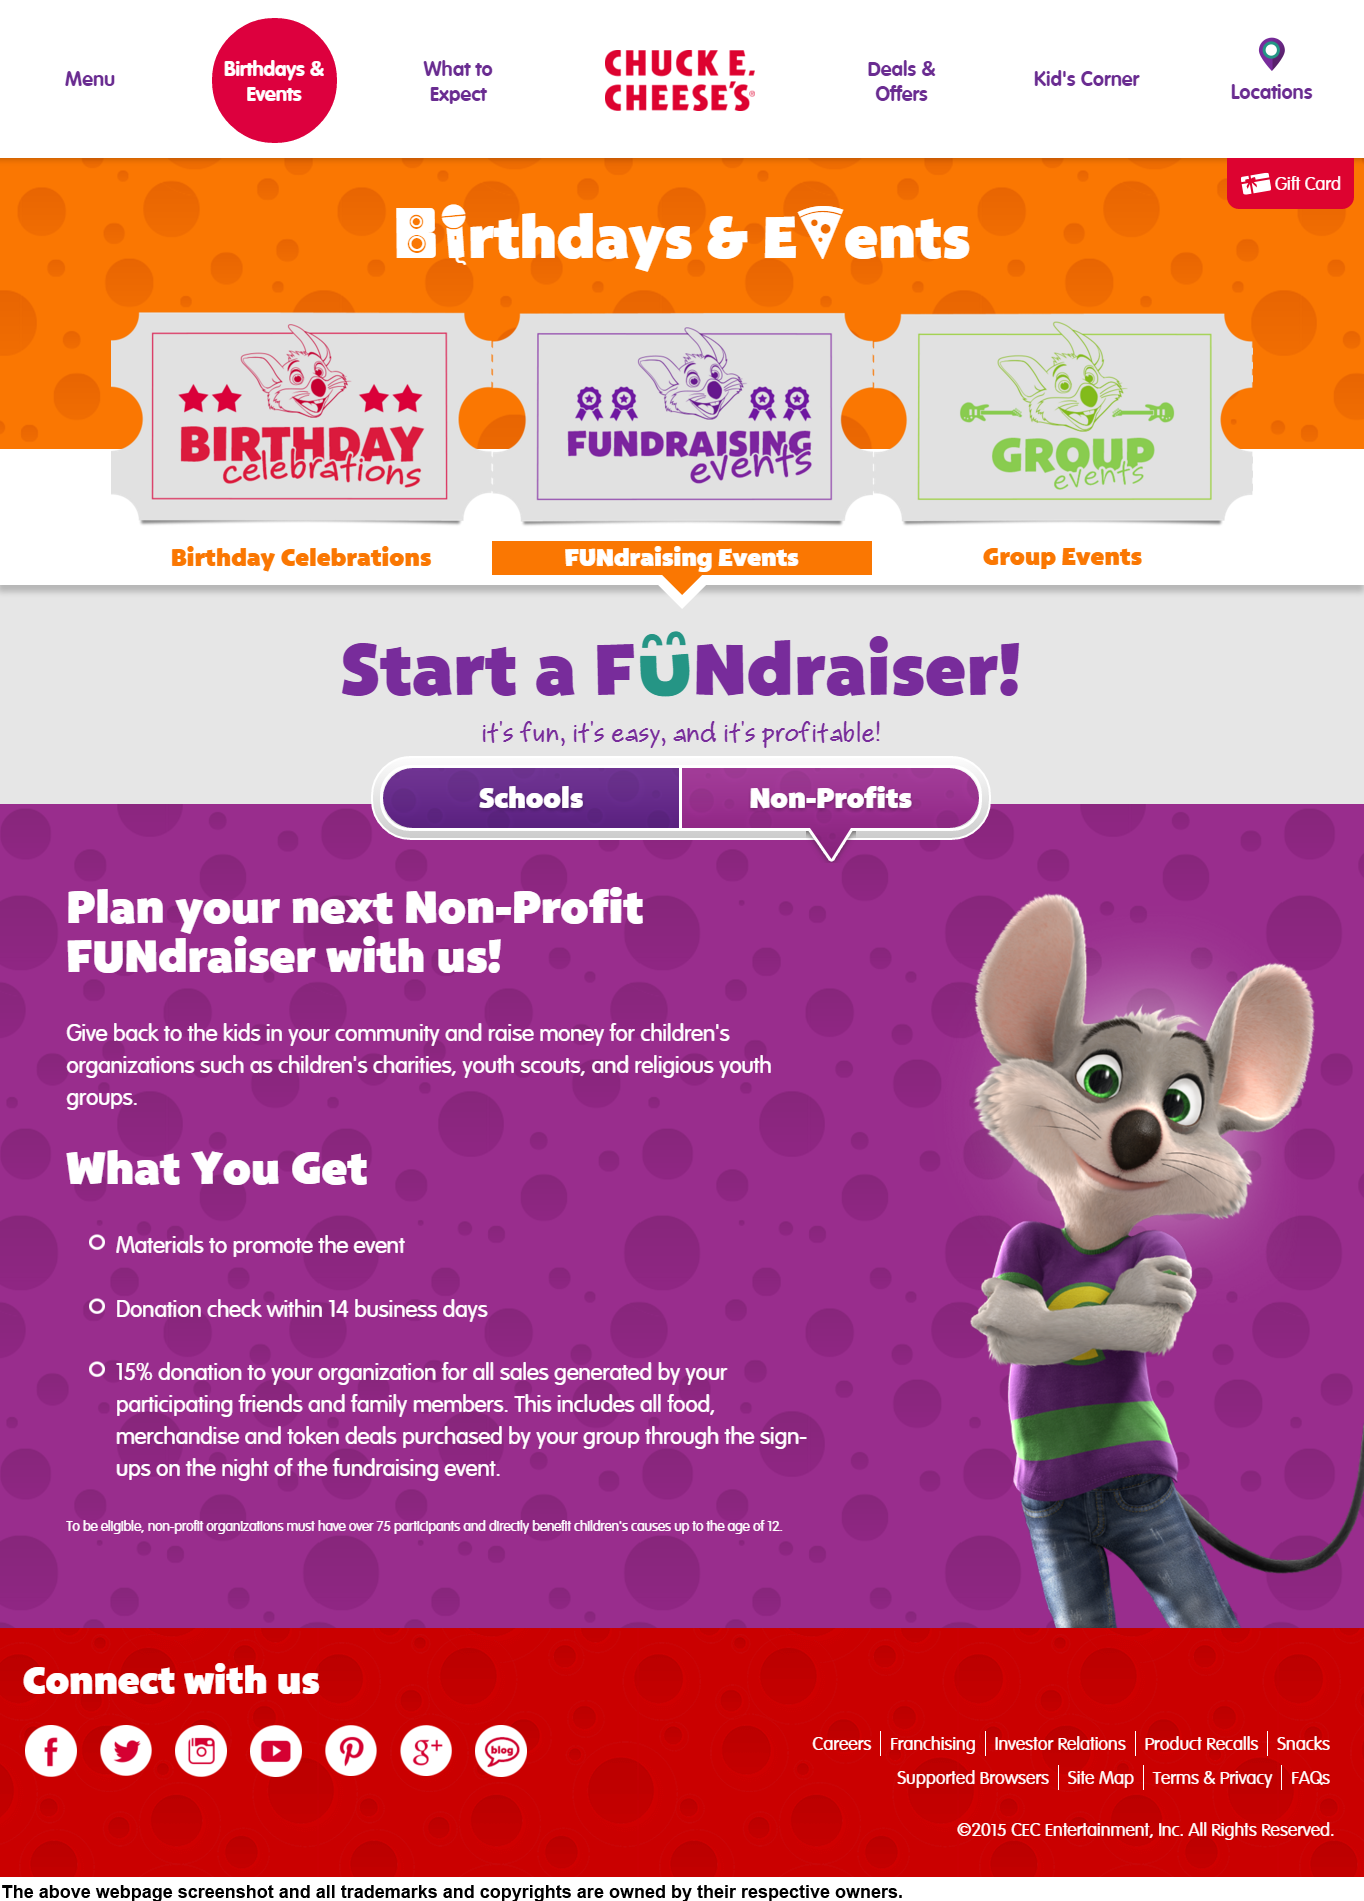 Chuck E CheeseS Donation Info And Form HttpsWwwChuckecheese